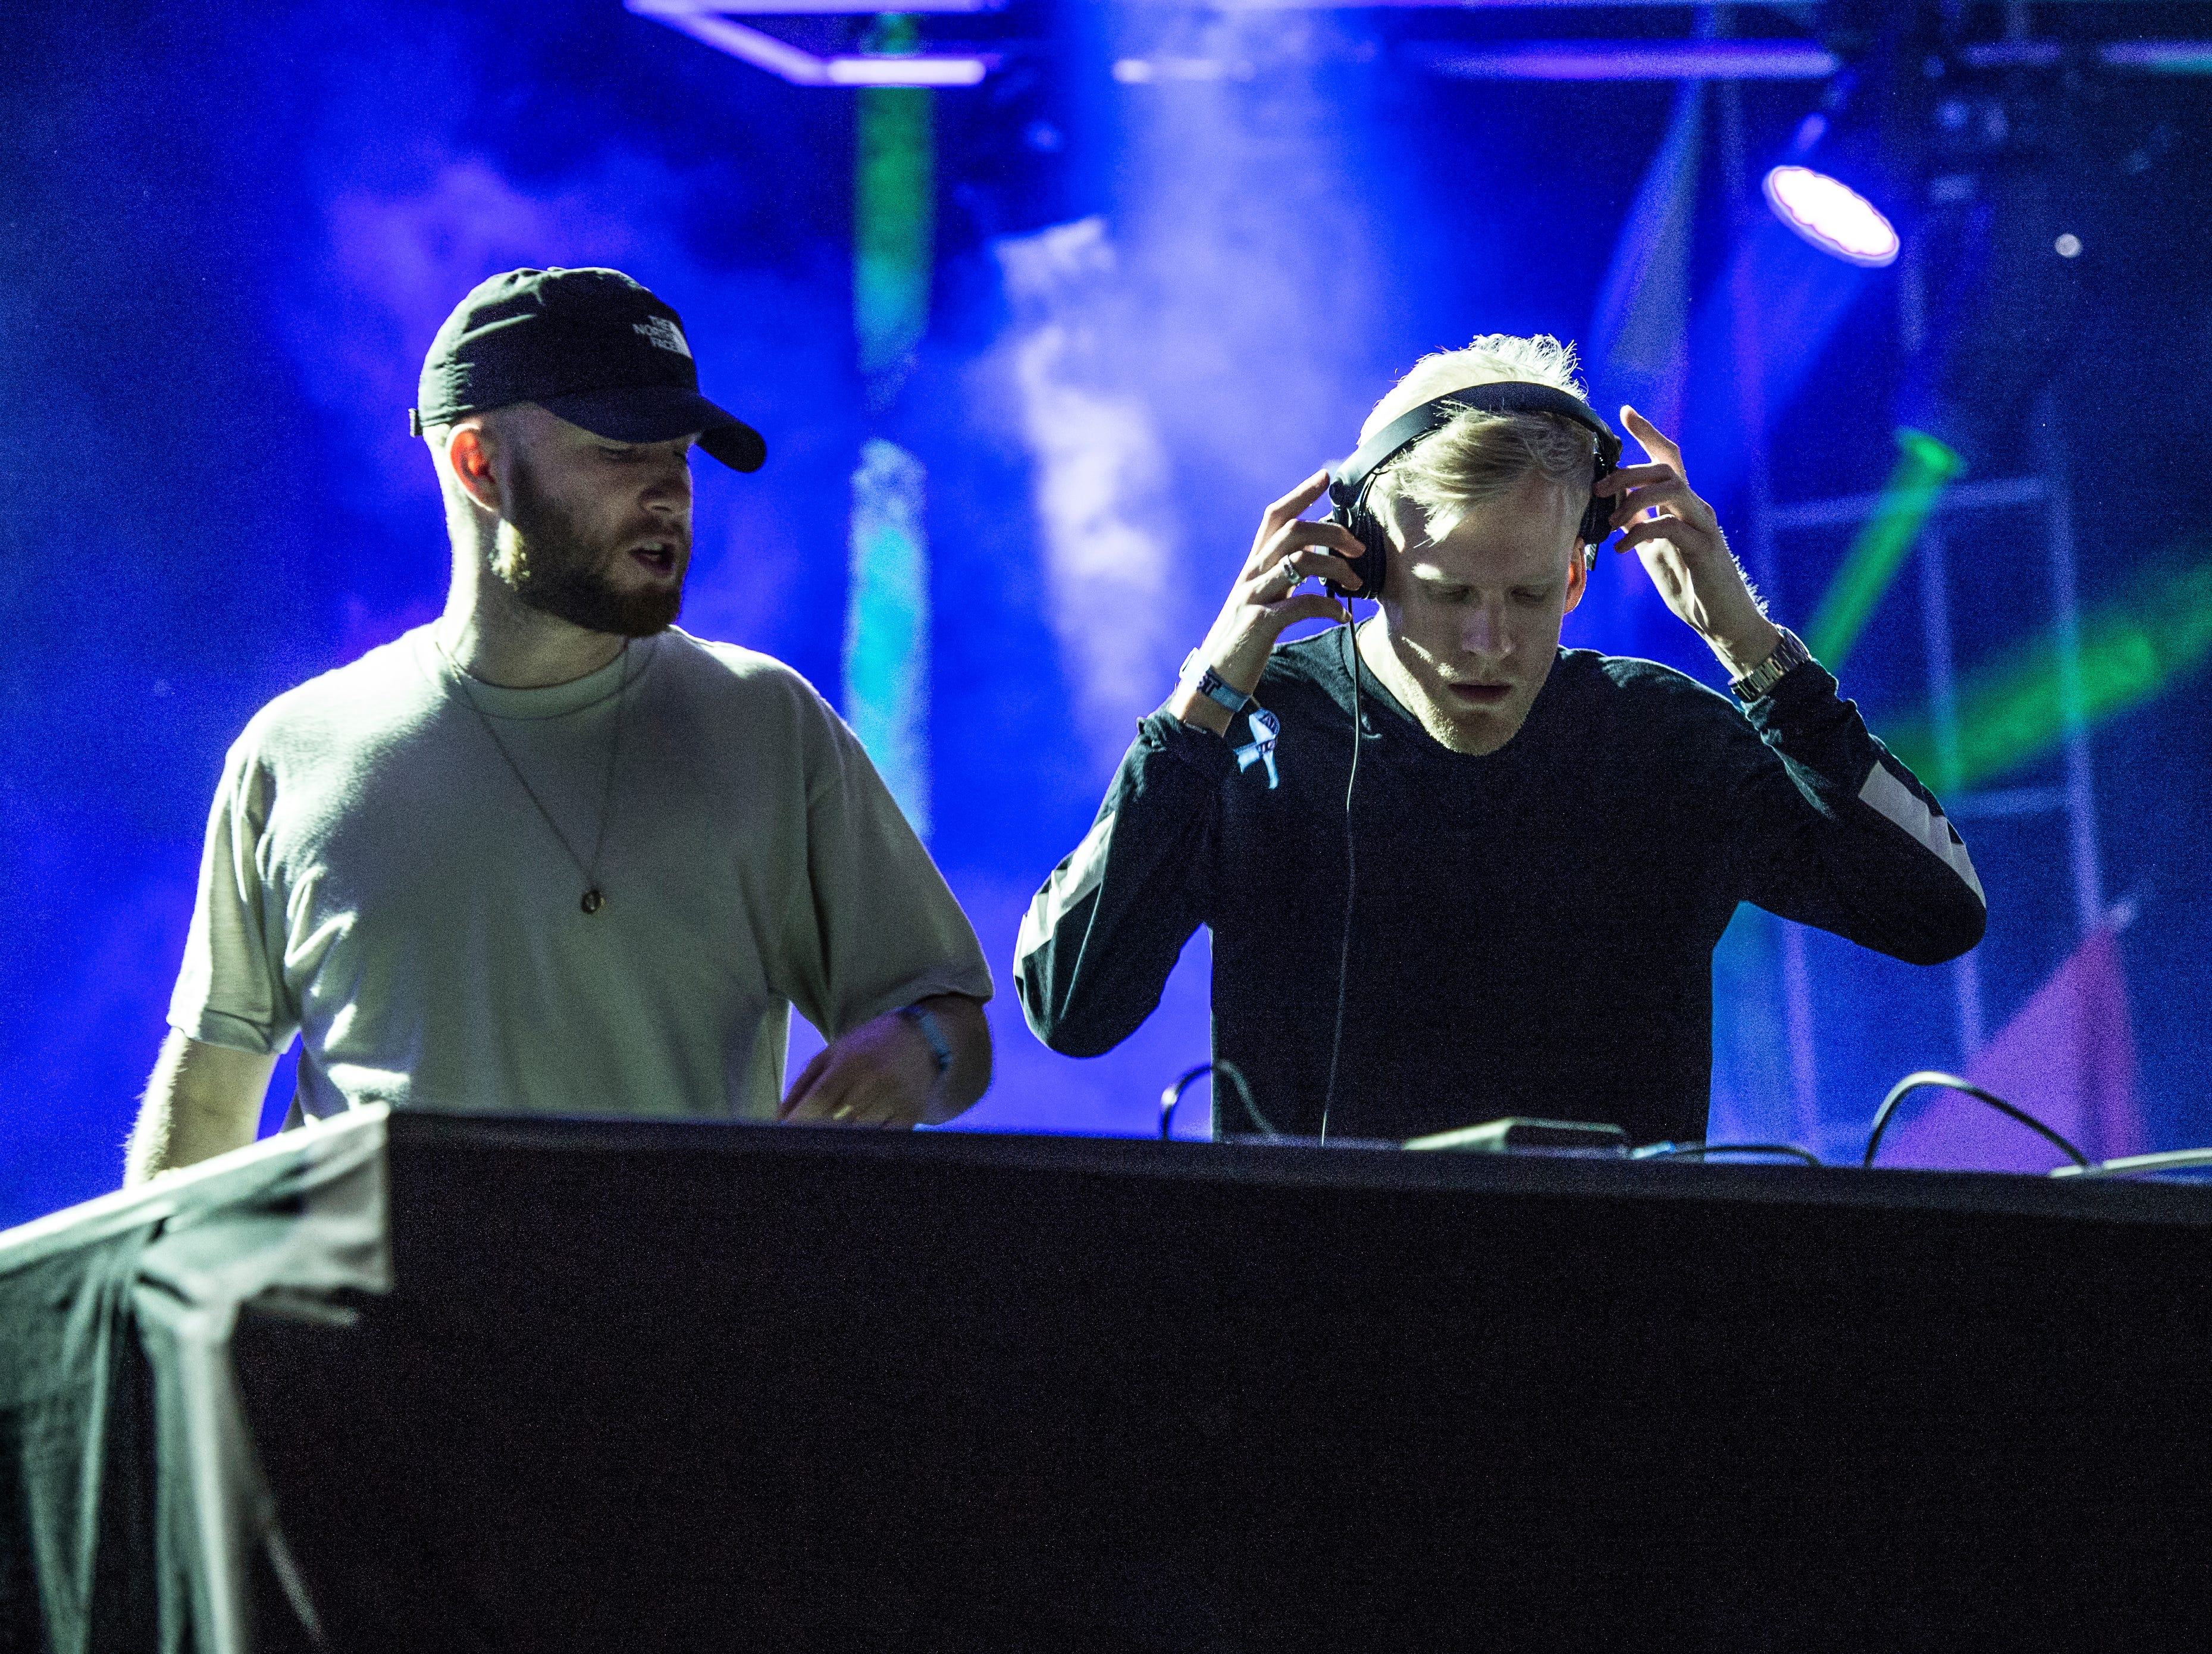 Oliver Lee, left, and James Carter of Snakehips perform at the Okeechobee Music and Arts Festival on Friday, March 3, 2017, in Okeechobee, Fla. (Photo by Amy Harris/Invision/AP)